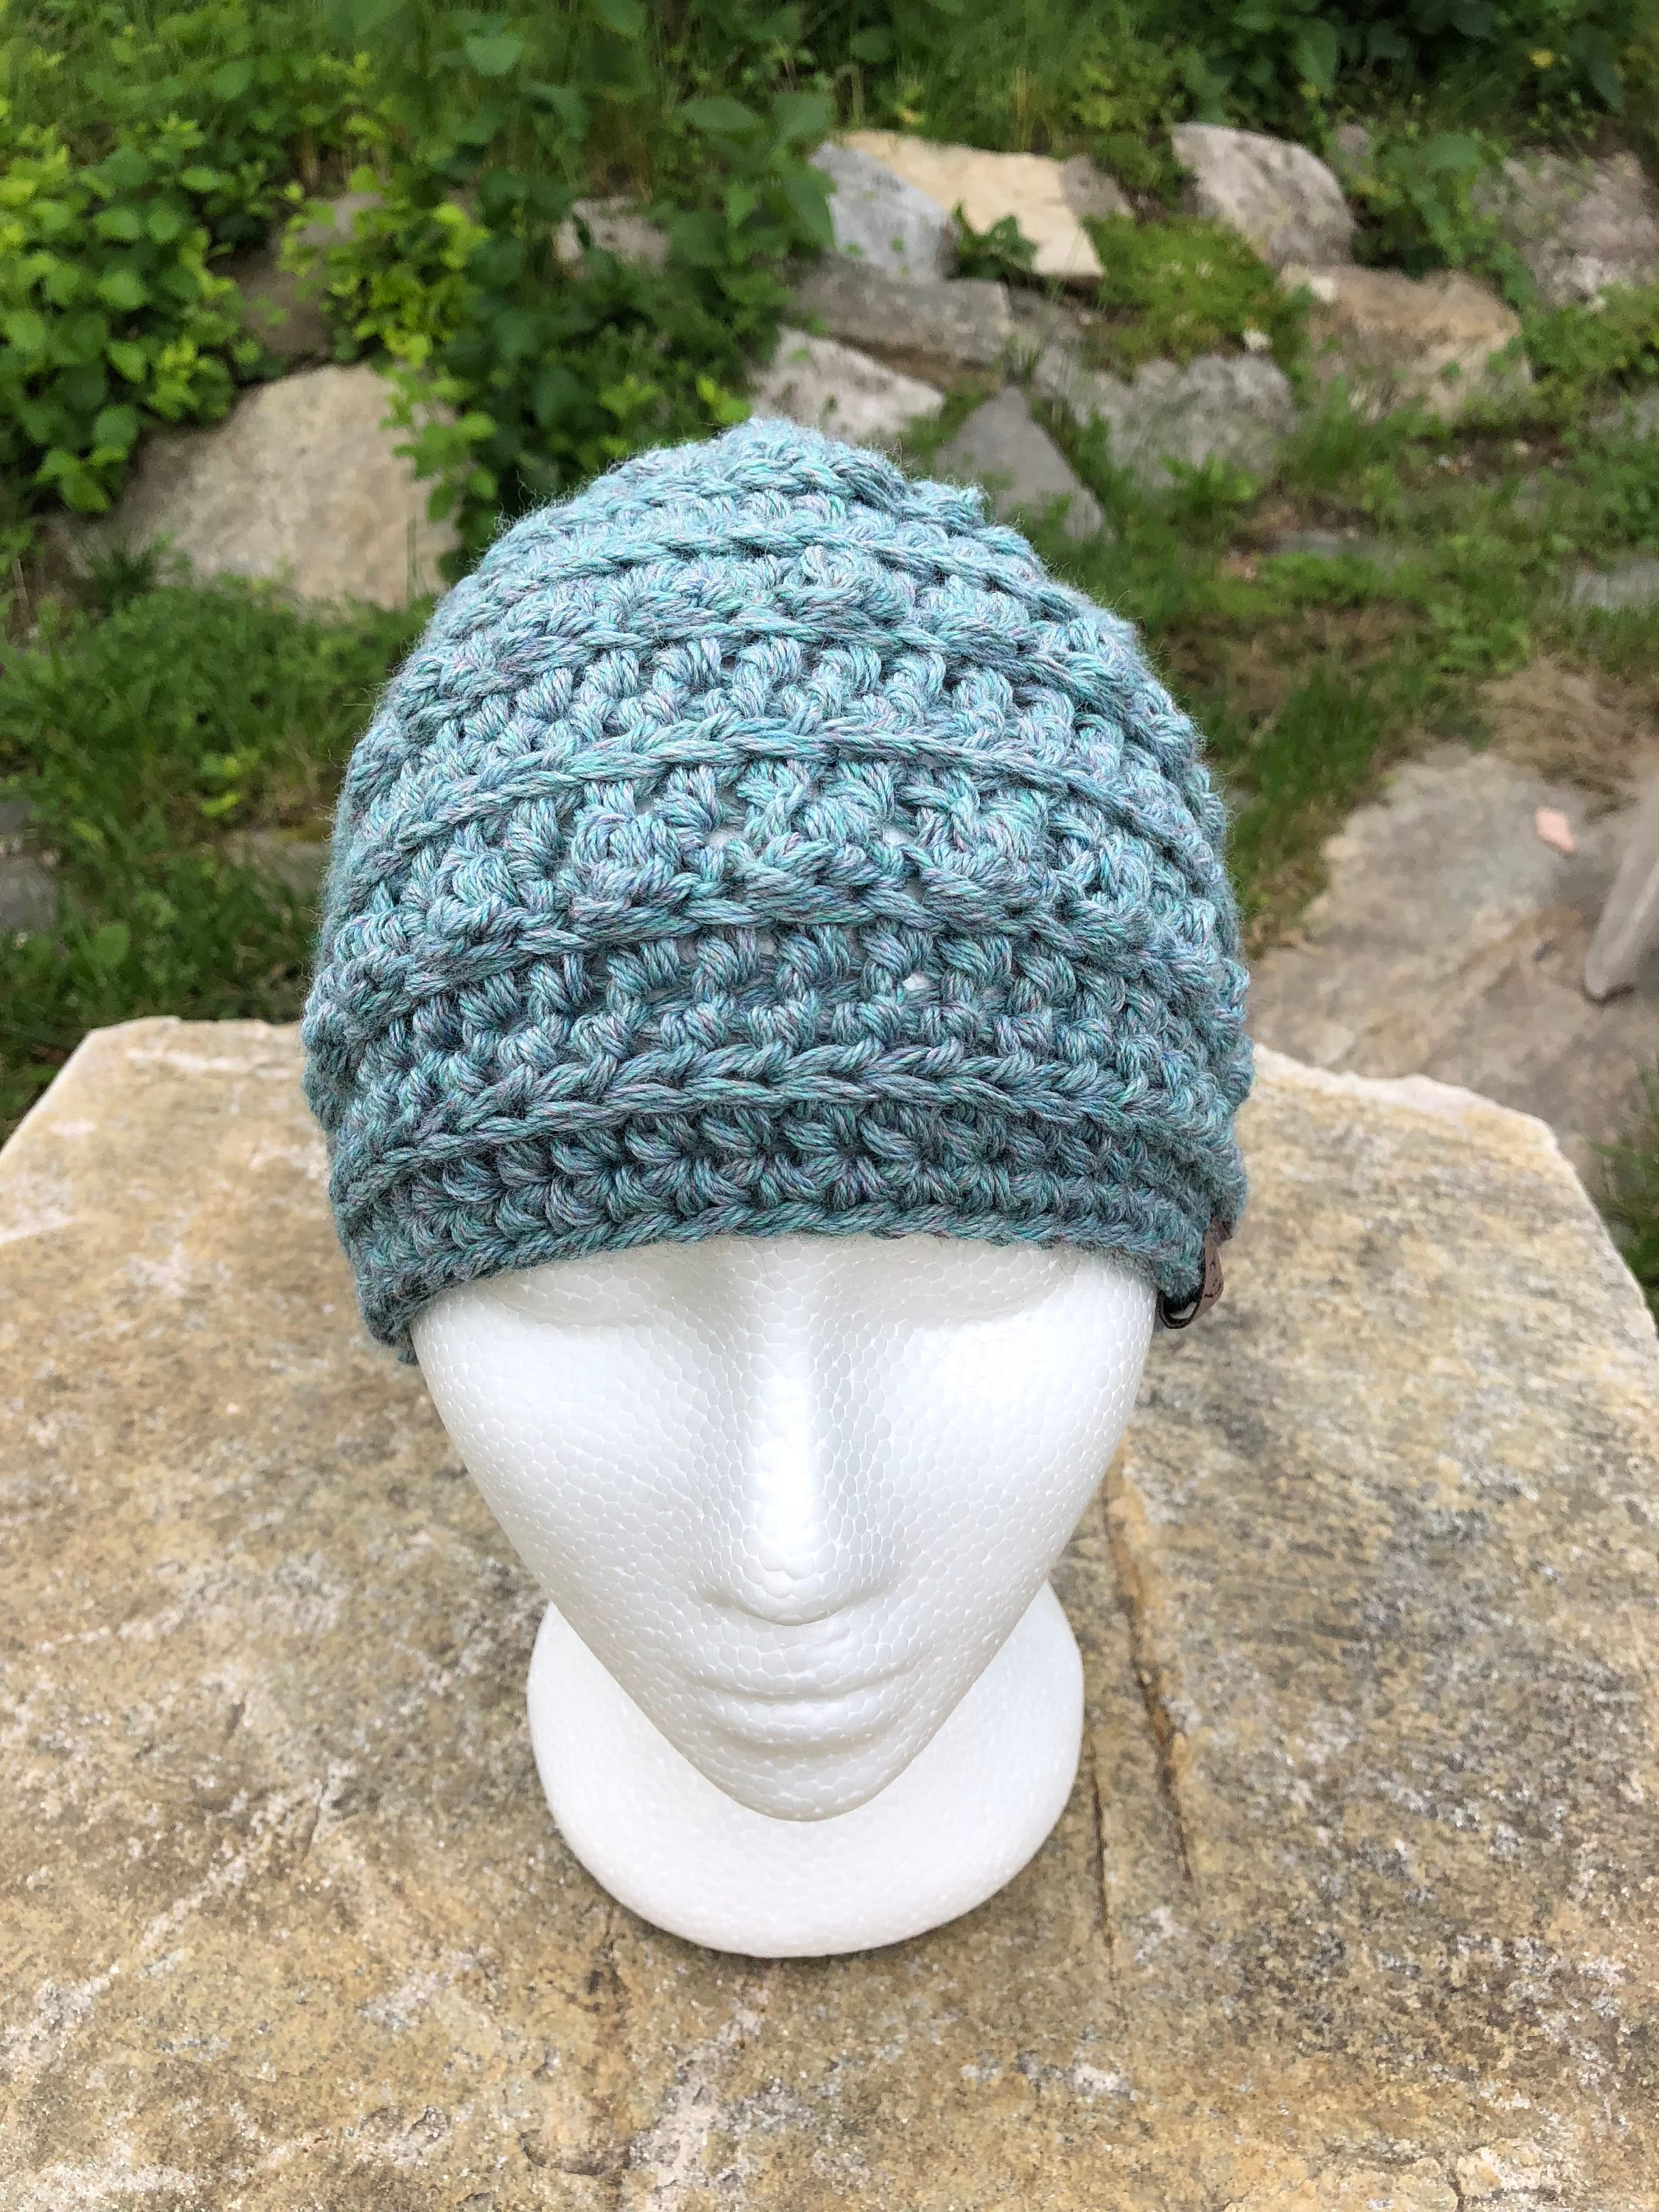 9be39a38bfb ... Beanie   Crochet Bobble Stitch Hat. gallery photo gallery photo gallery  photo ...